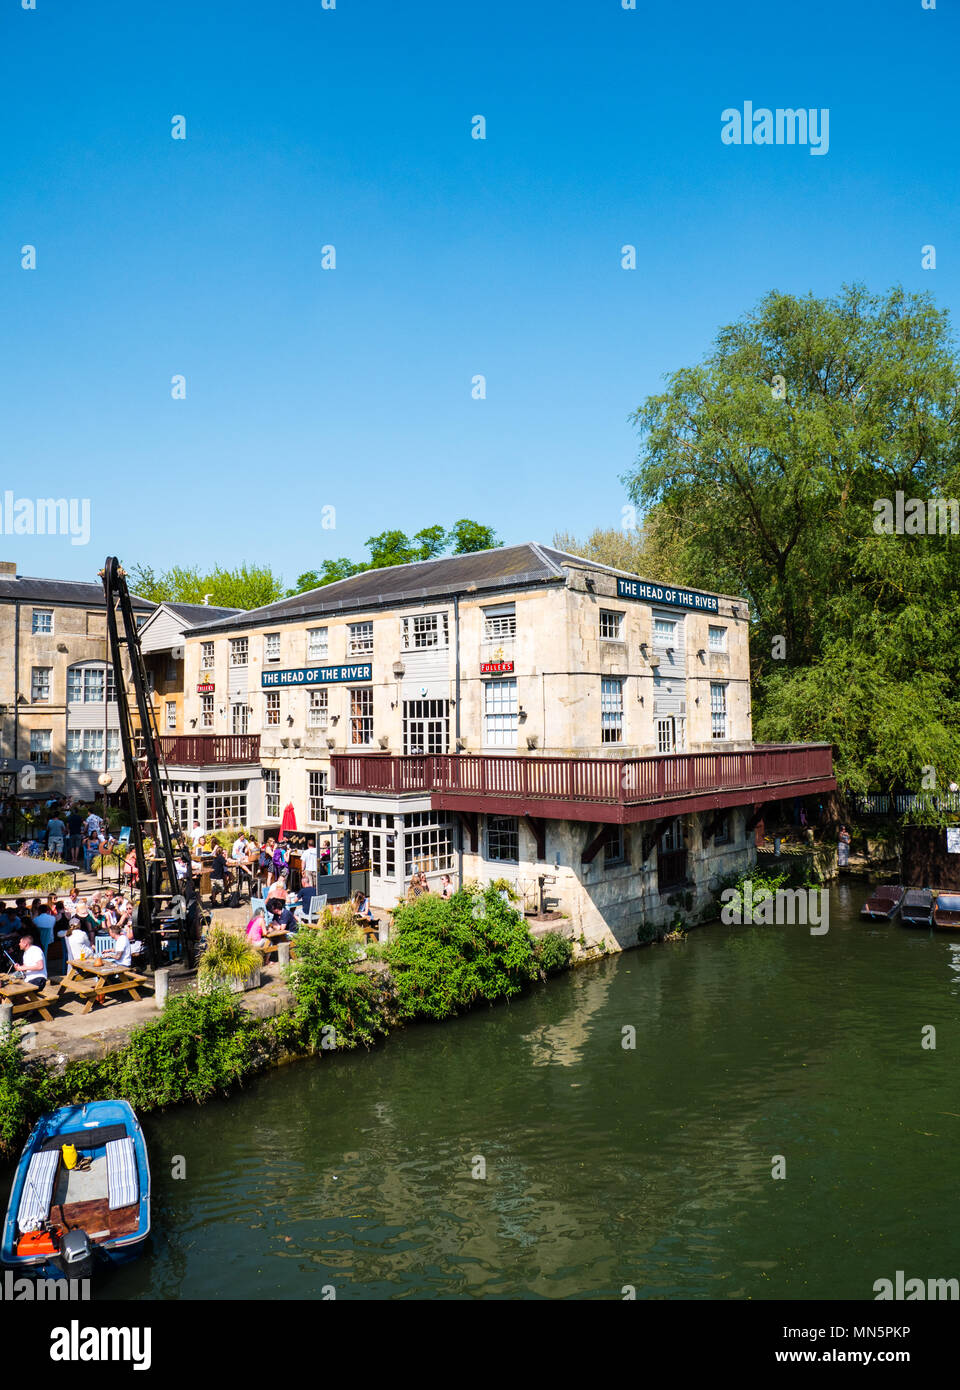 Head of The River Hotel, Pub, Restaurant, River Thames, Oxford, Oxfordshire, England, UK, GB, UK. - Stock Image